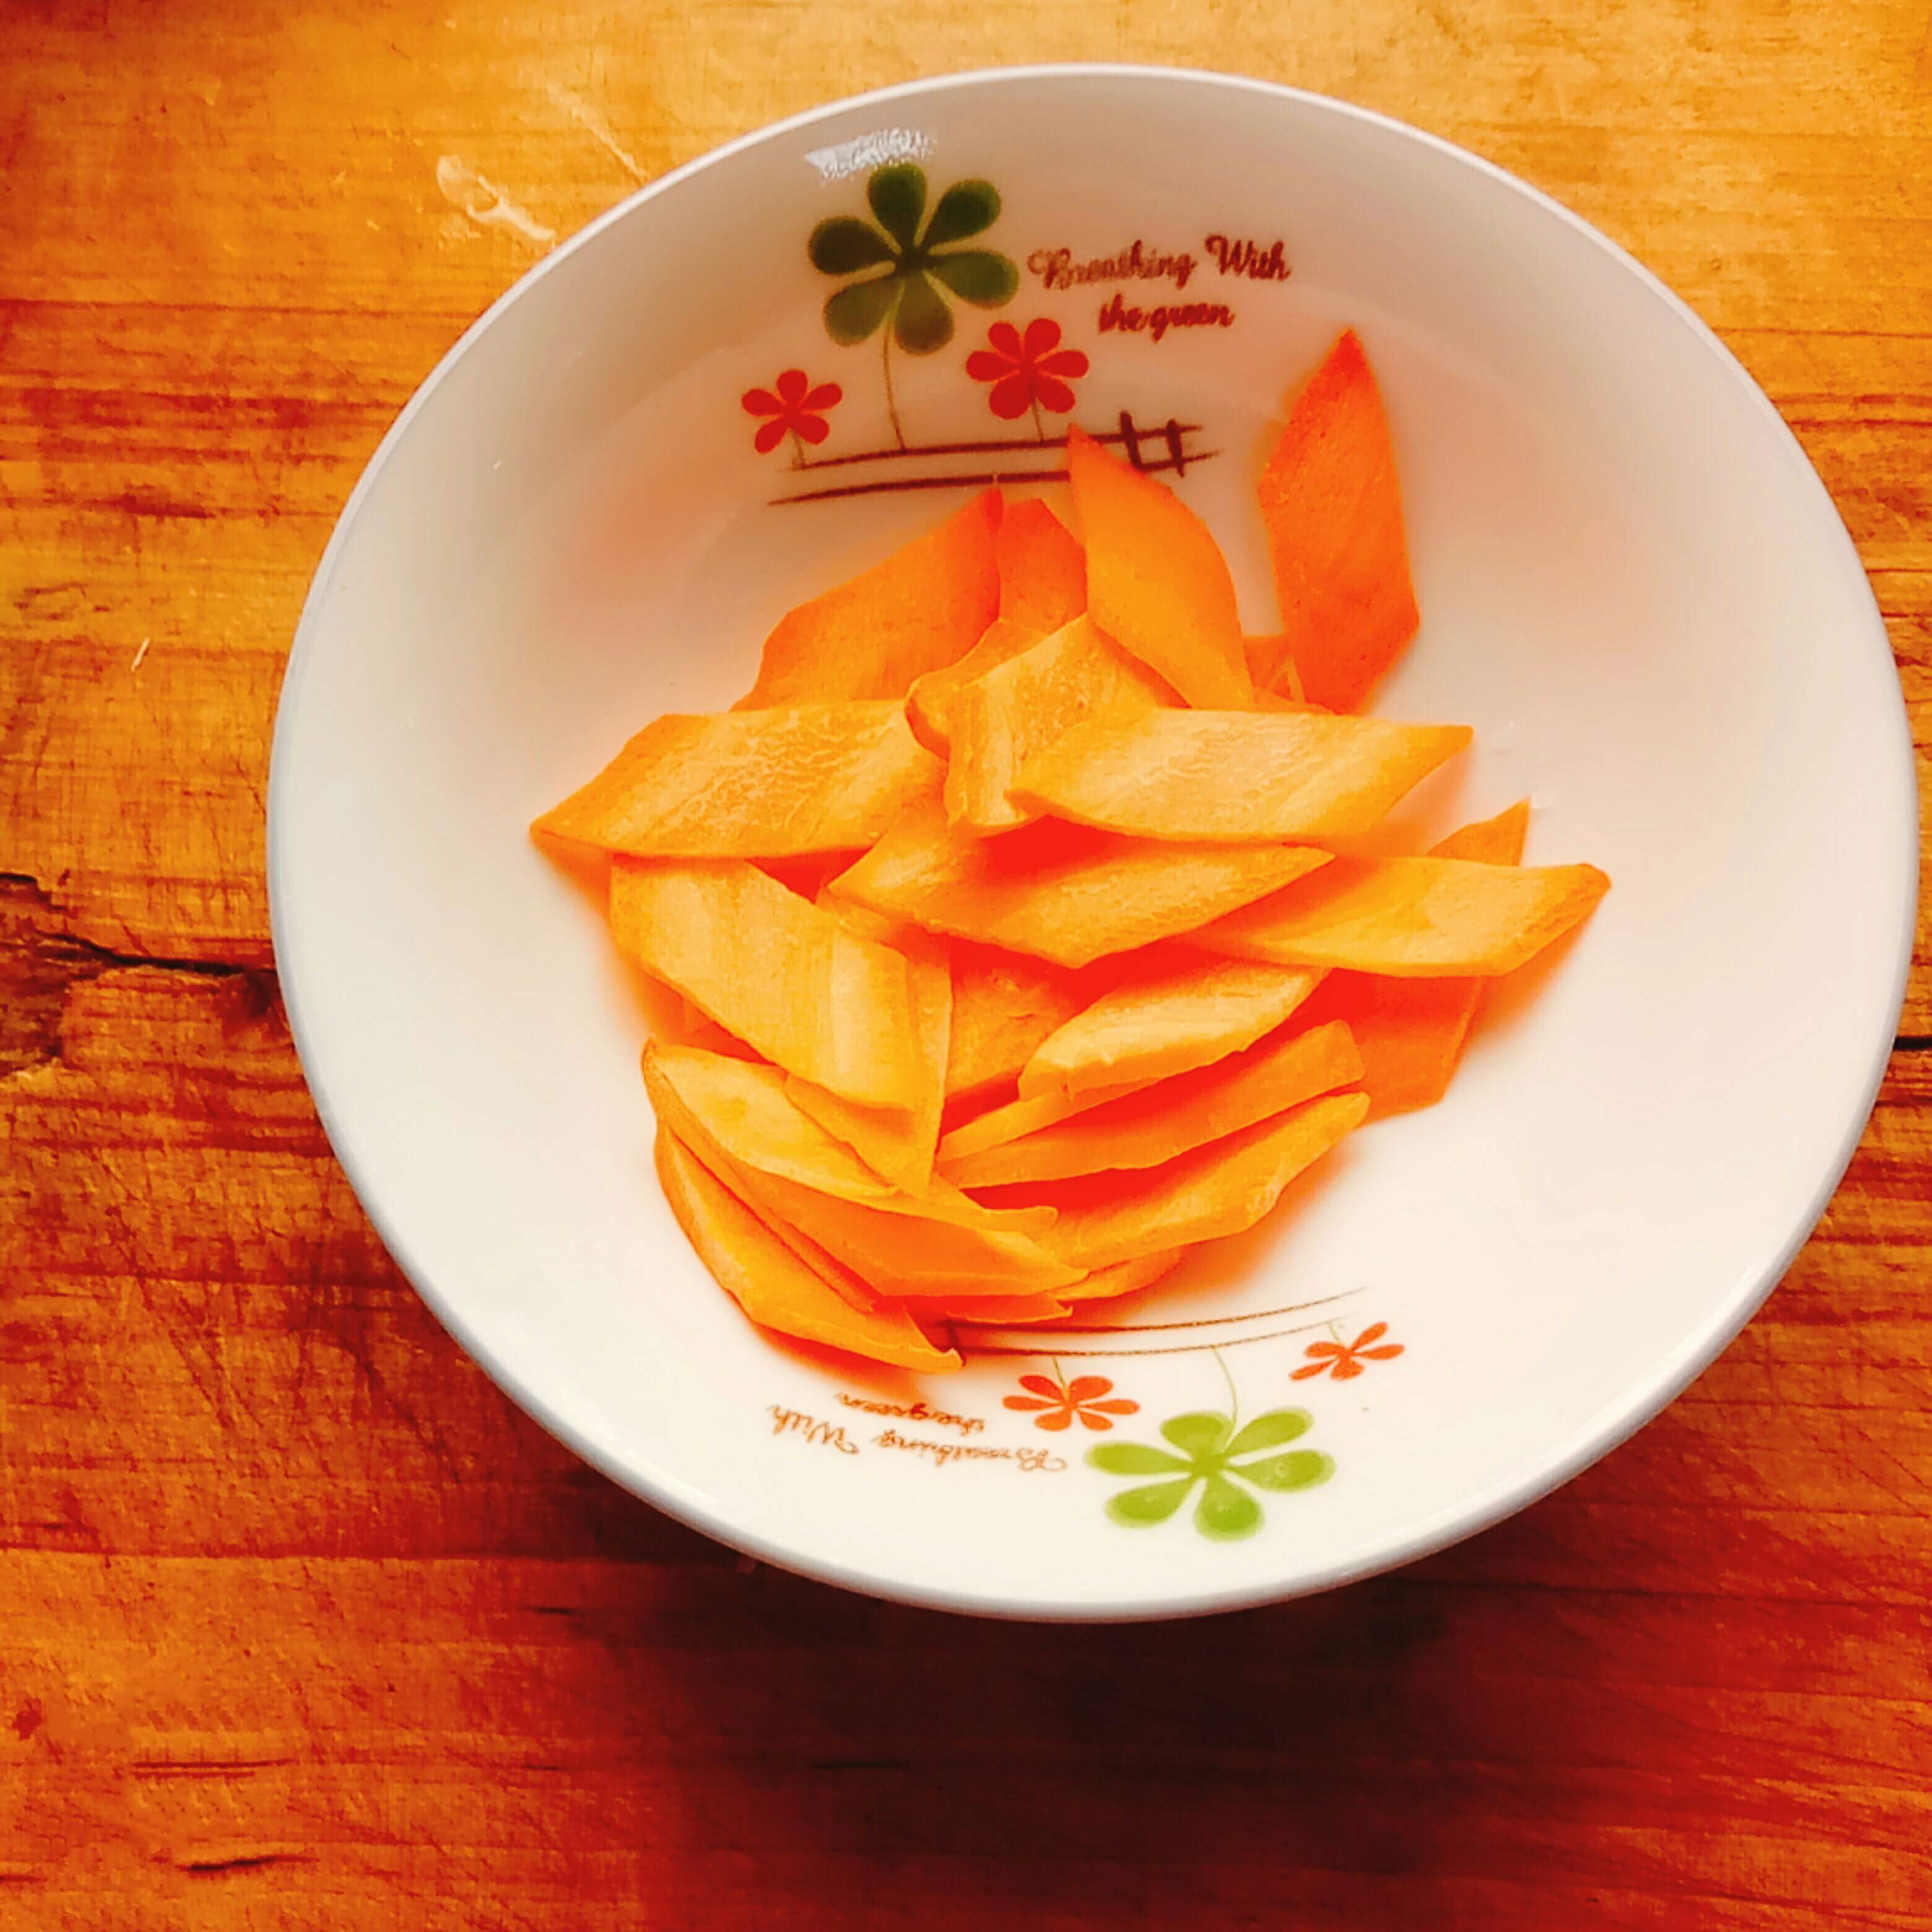 Cut the carrots to pieces and put them in the bowl